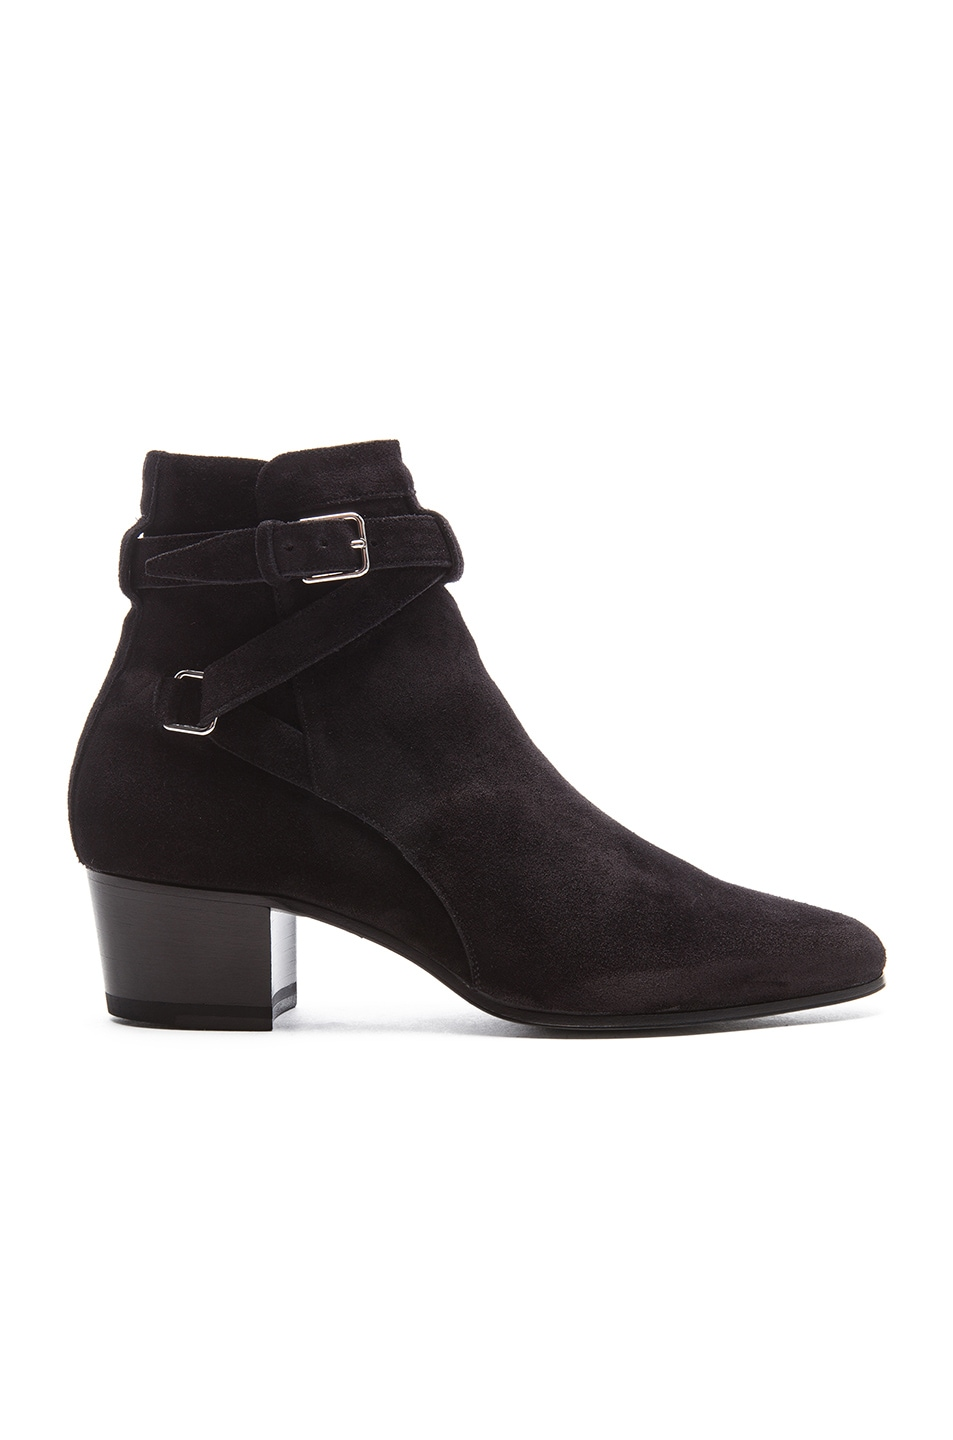 Image 1 of Saint Laurent Suede Blake Buckle Boots in Black